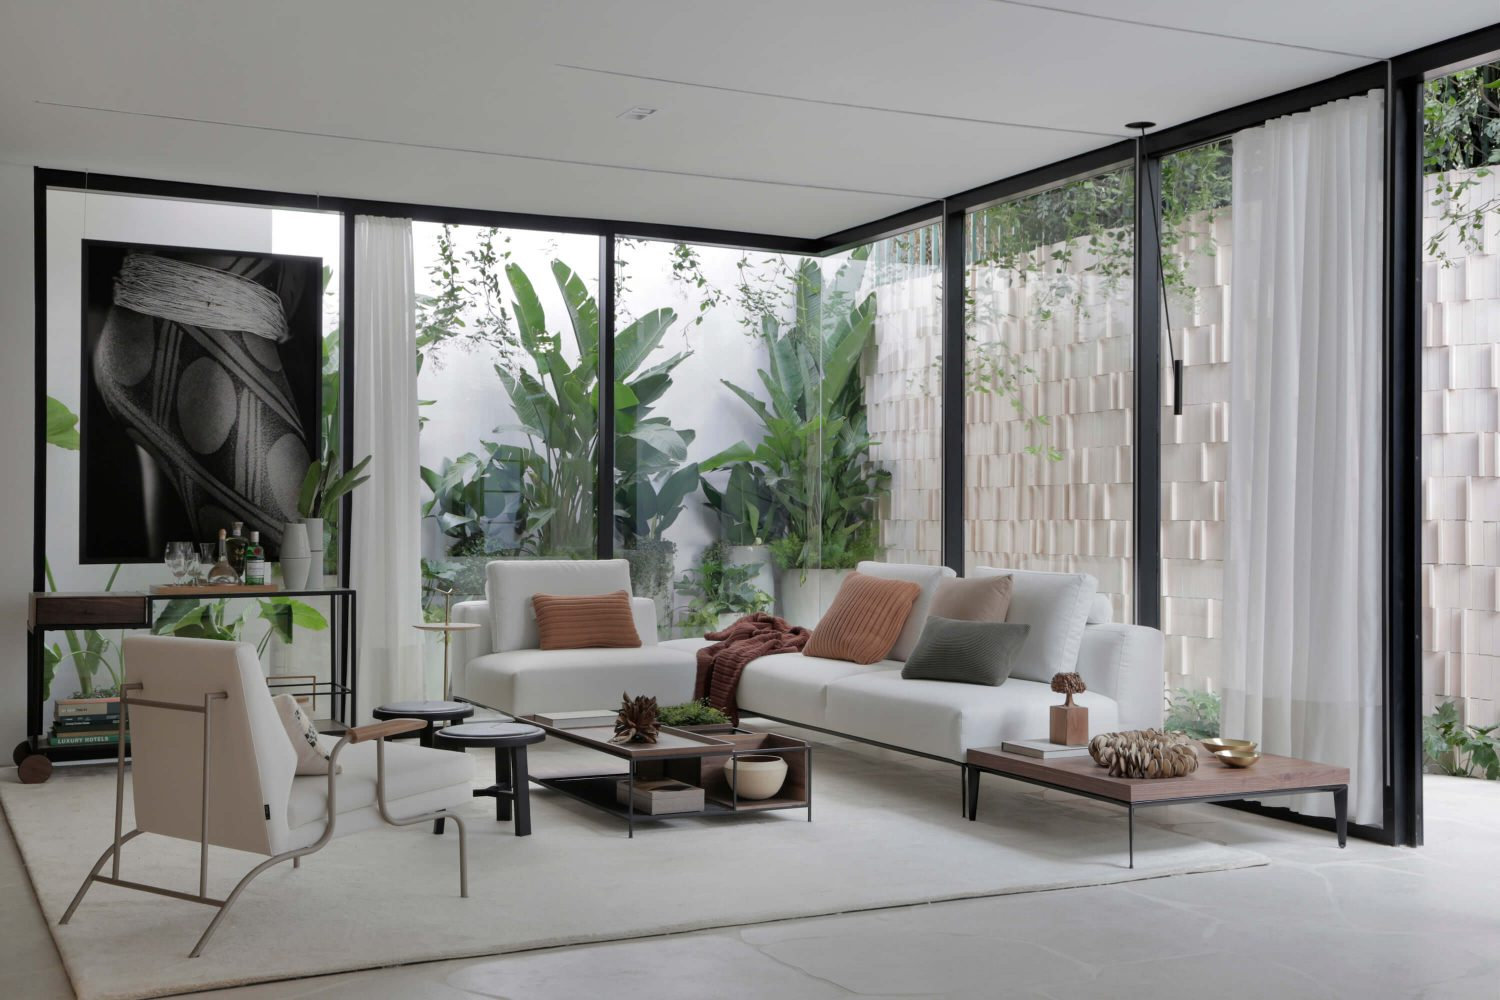 Conecta House by Ticiane Lima Arquitetura and Interiores